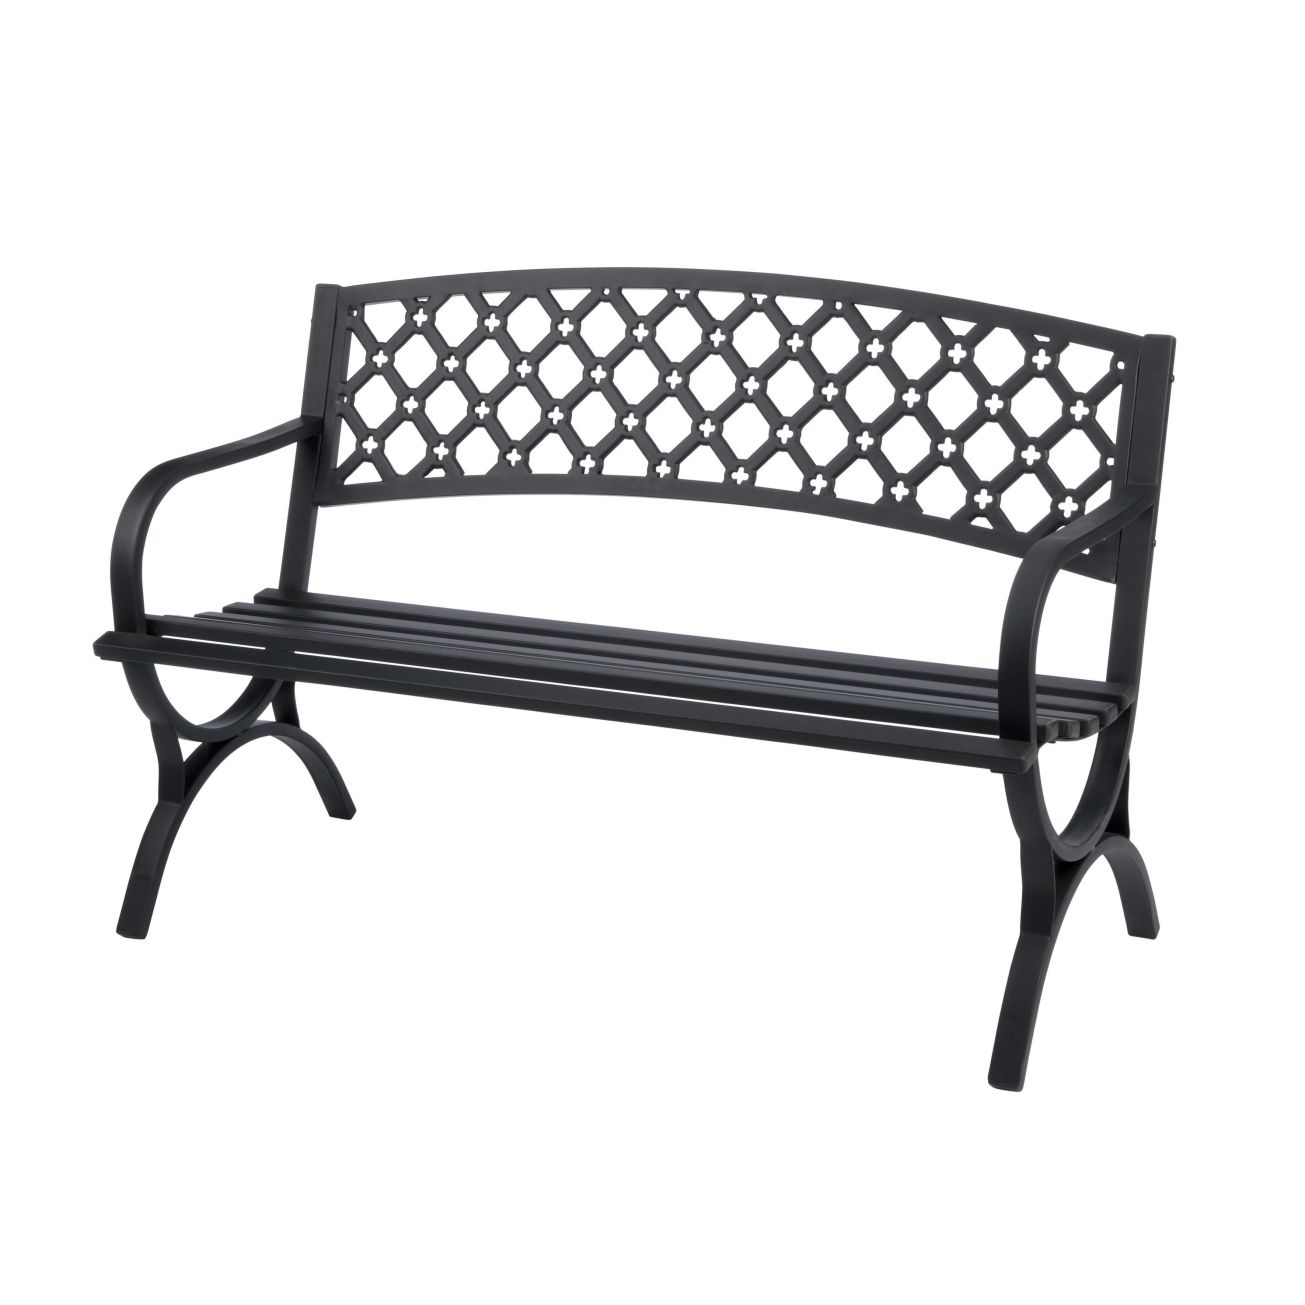 Park Benches Metal Garden Benches Bench Cushions Outdoor Storage Bench